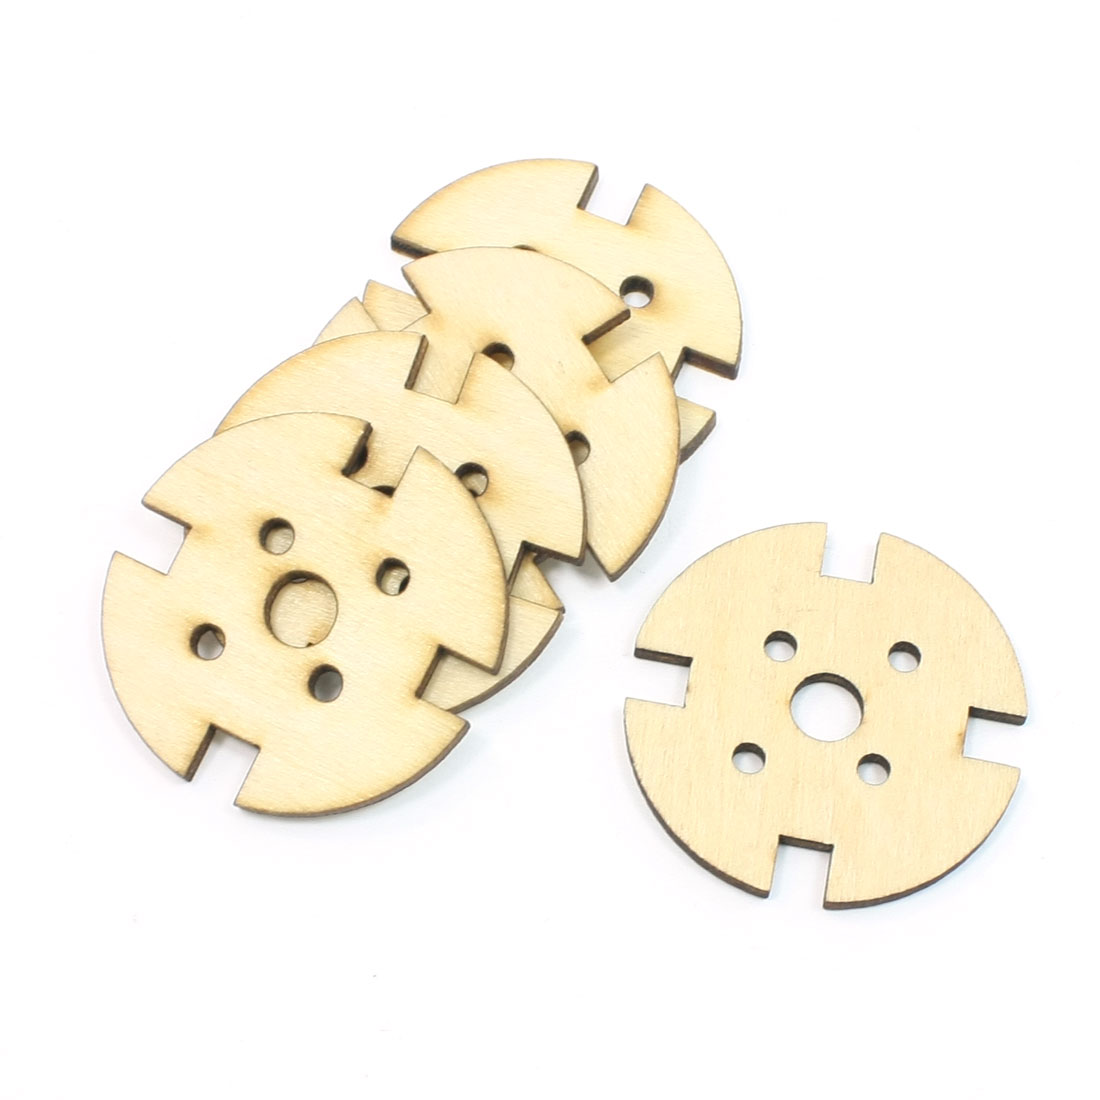 2 Pcs Round Wooden Mount for 2212 2208 RC Plane Brushless Motor